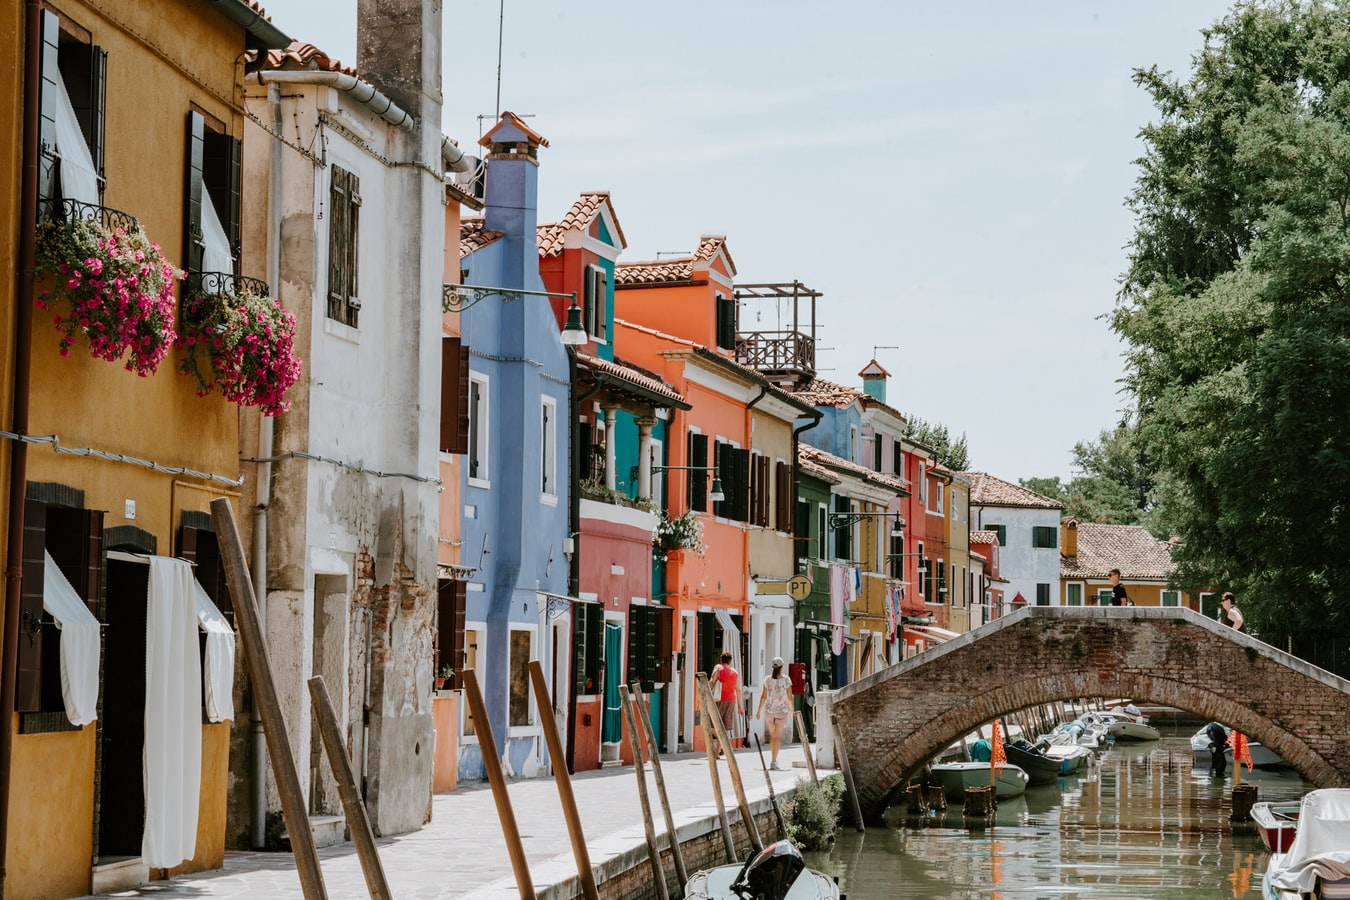 burona in venice, village in italy, colored and pastel houses near a canal